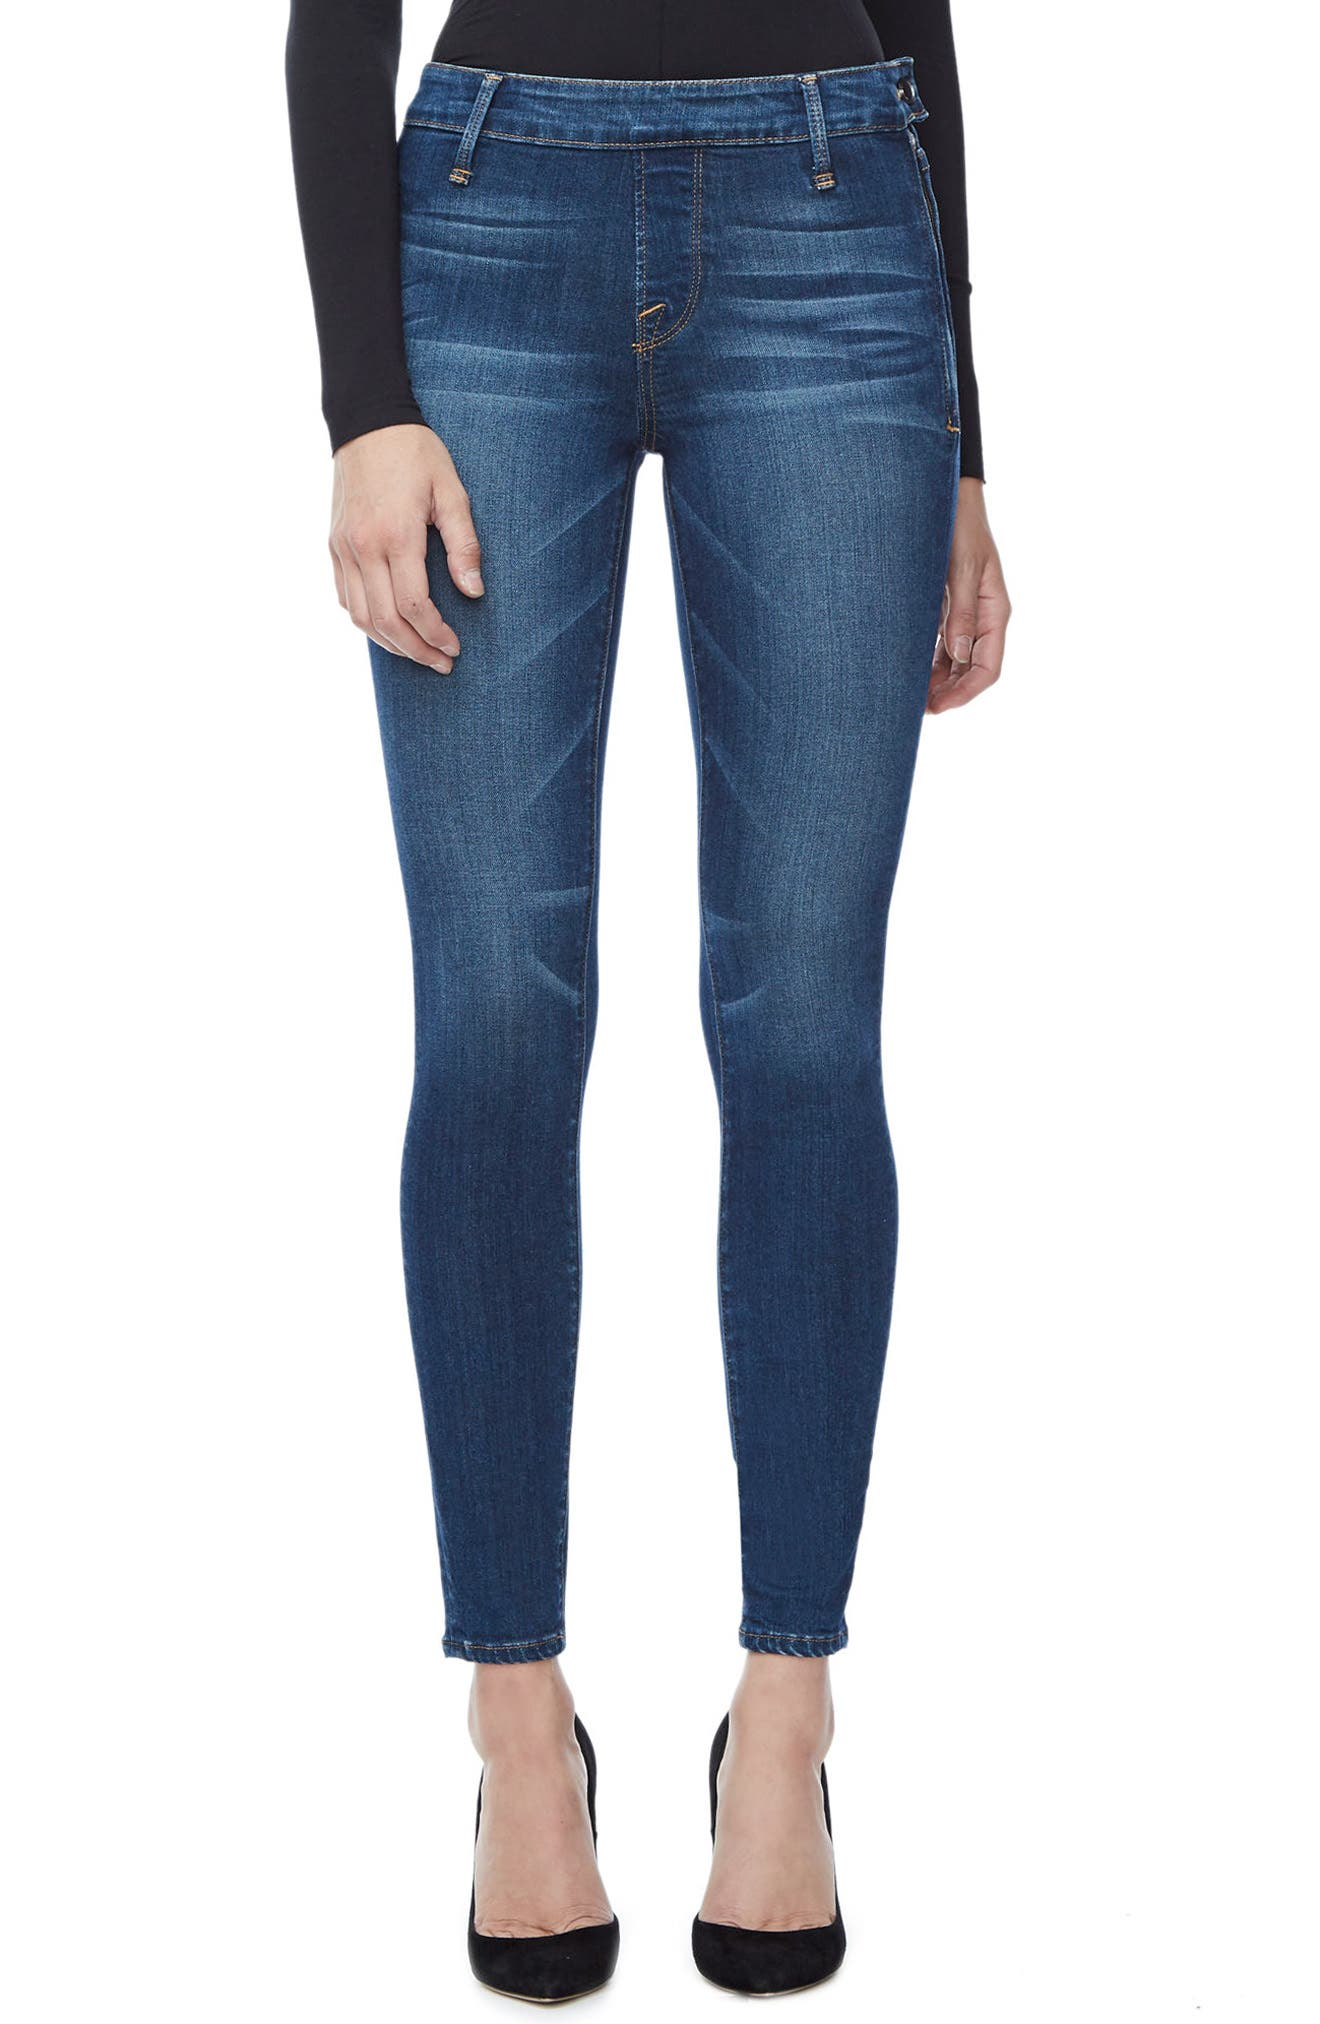 Alternate Image 1 Selected - Good American The Slim Zip High Waist Ankle Skinny Jeans (Blue 013) (Regular & Plus Size)